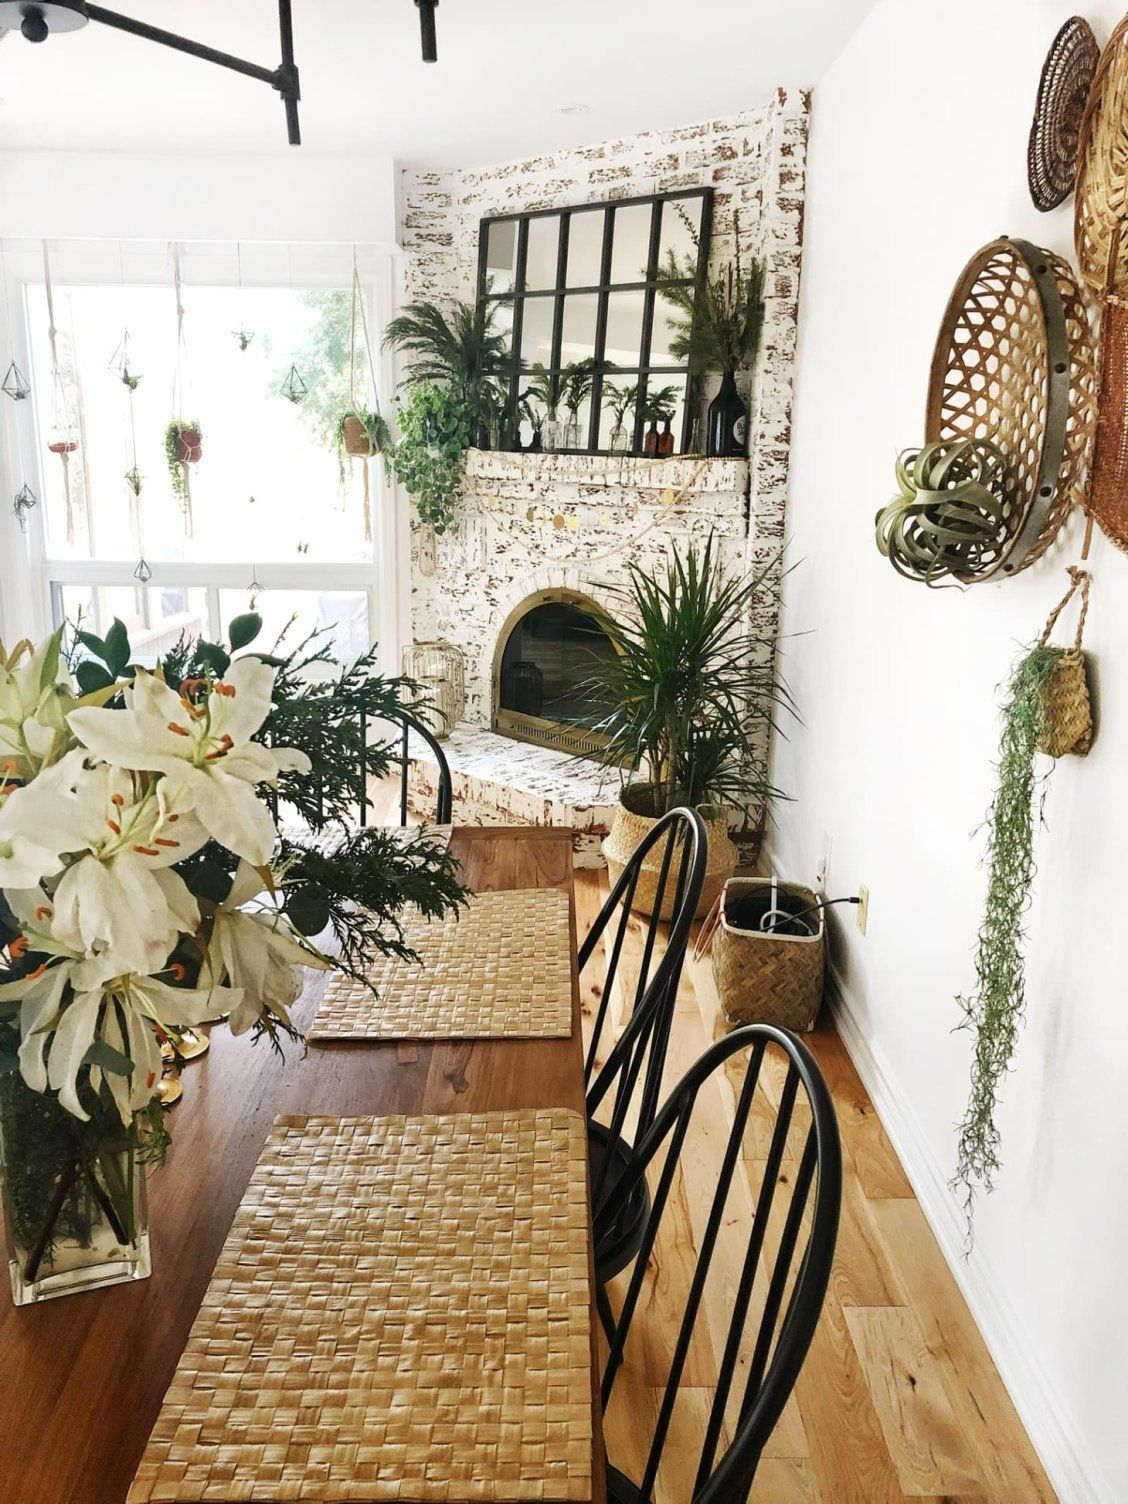 This Bright Boho House Has 75 House Plants… All With Their